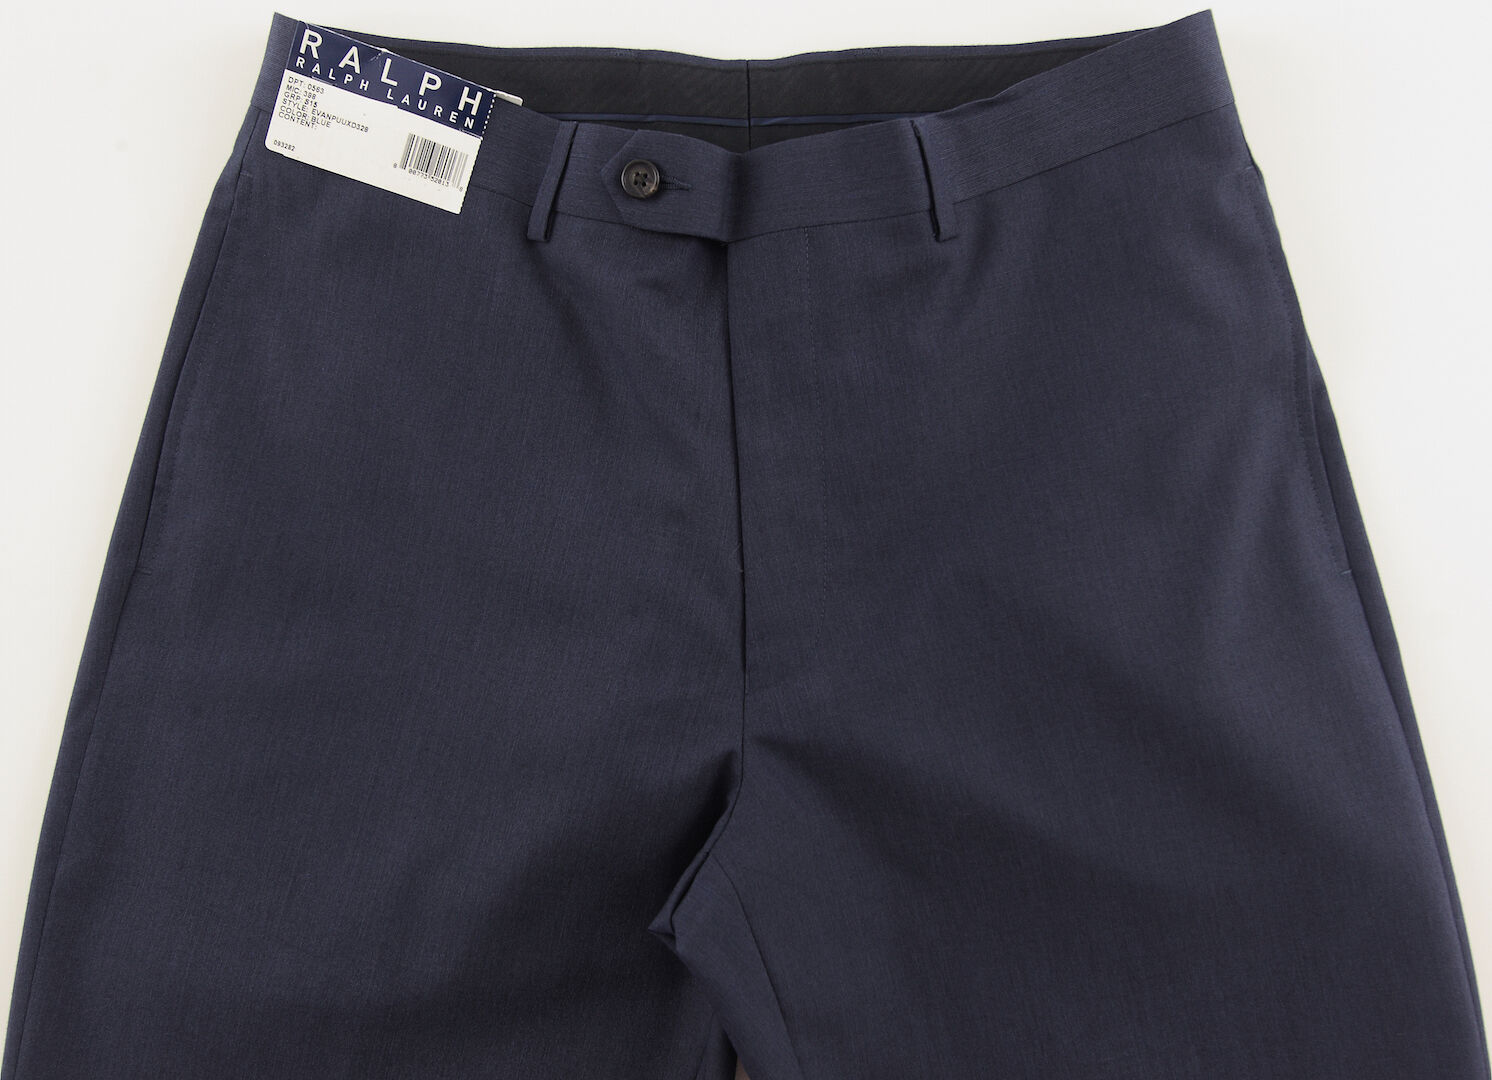 Men's RALPH LAUREN Navy bluee Dress Pants 34x30 34 30 NWT NEW Washable Modern Fit